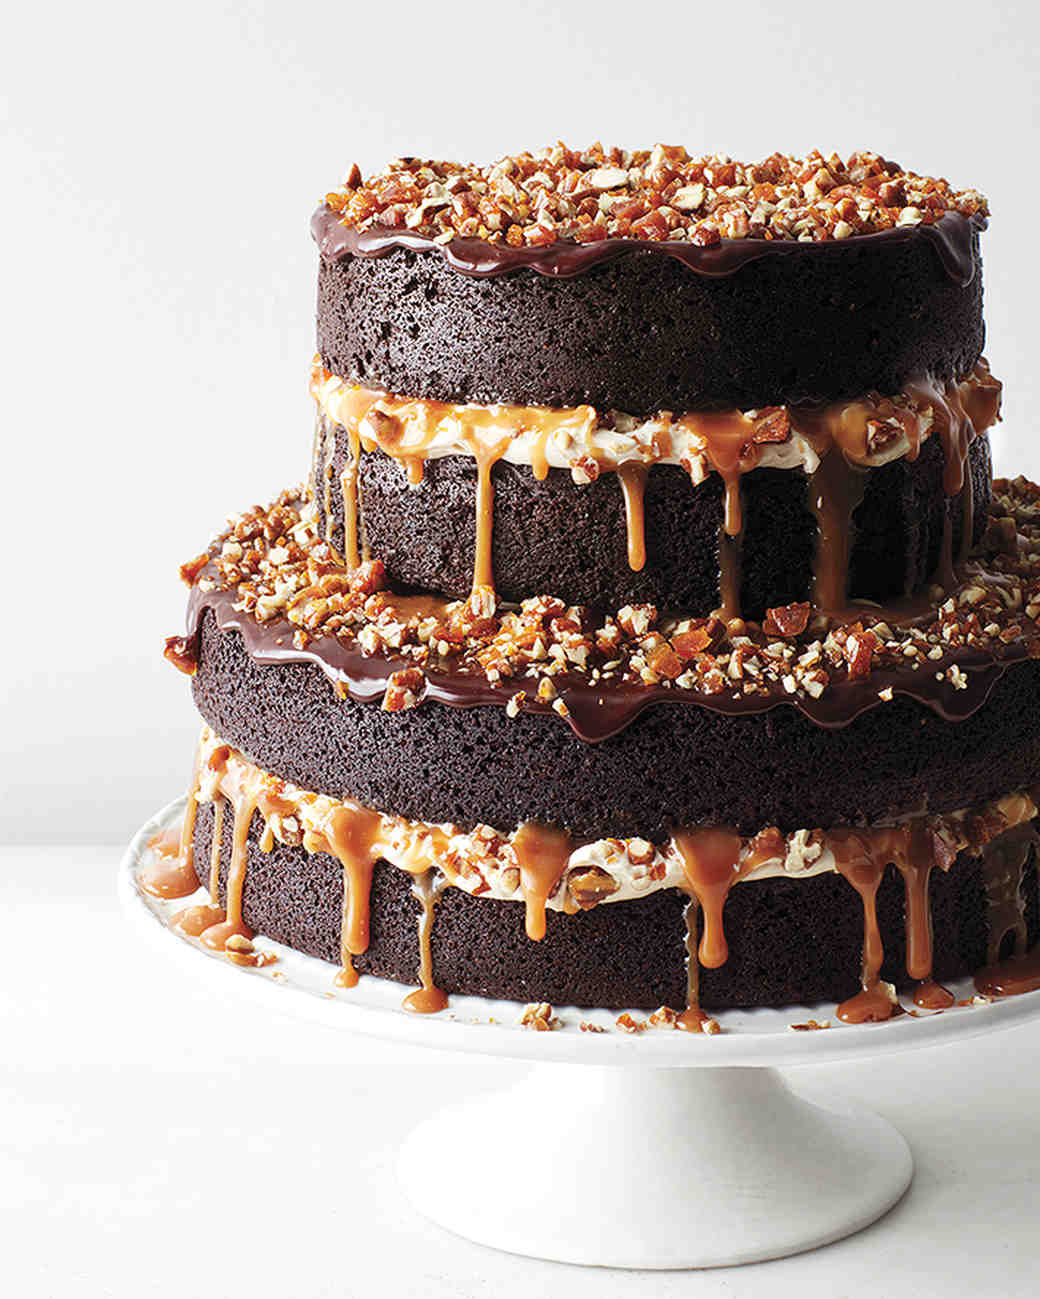 26 Chocolate Wedding Cake Ideas That Will Blow Your Guests